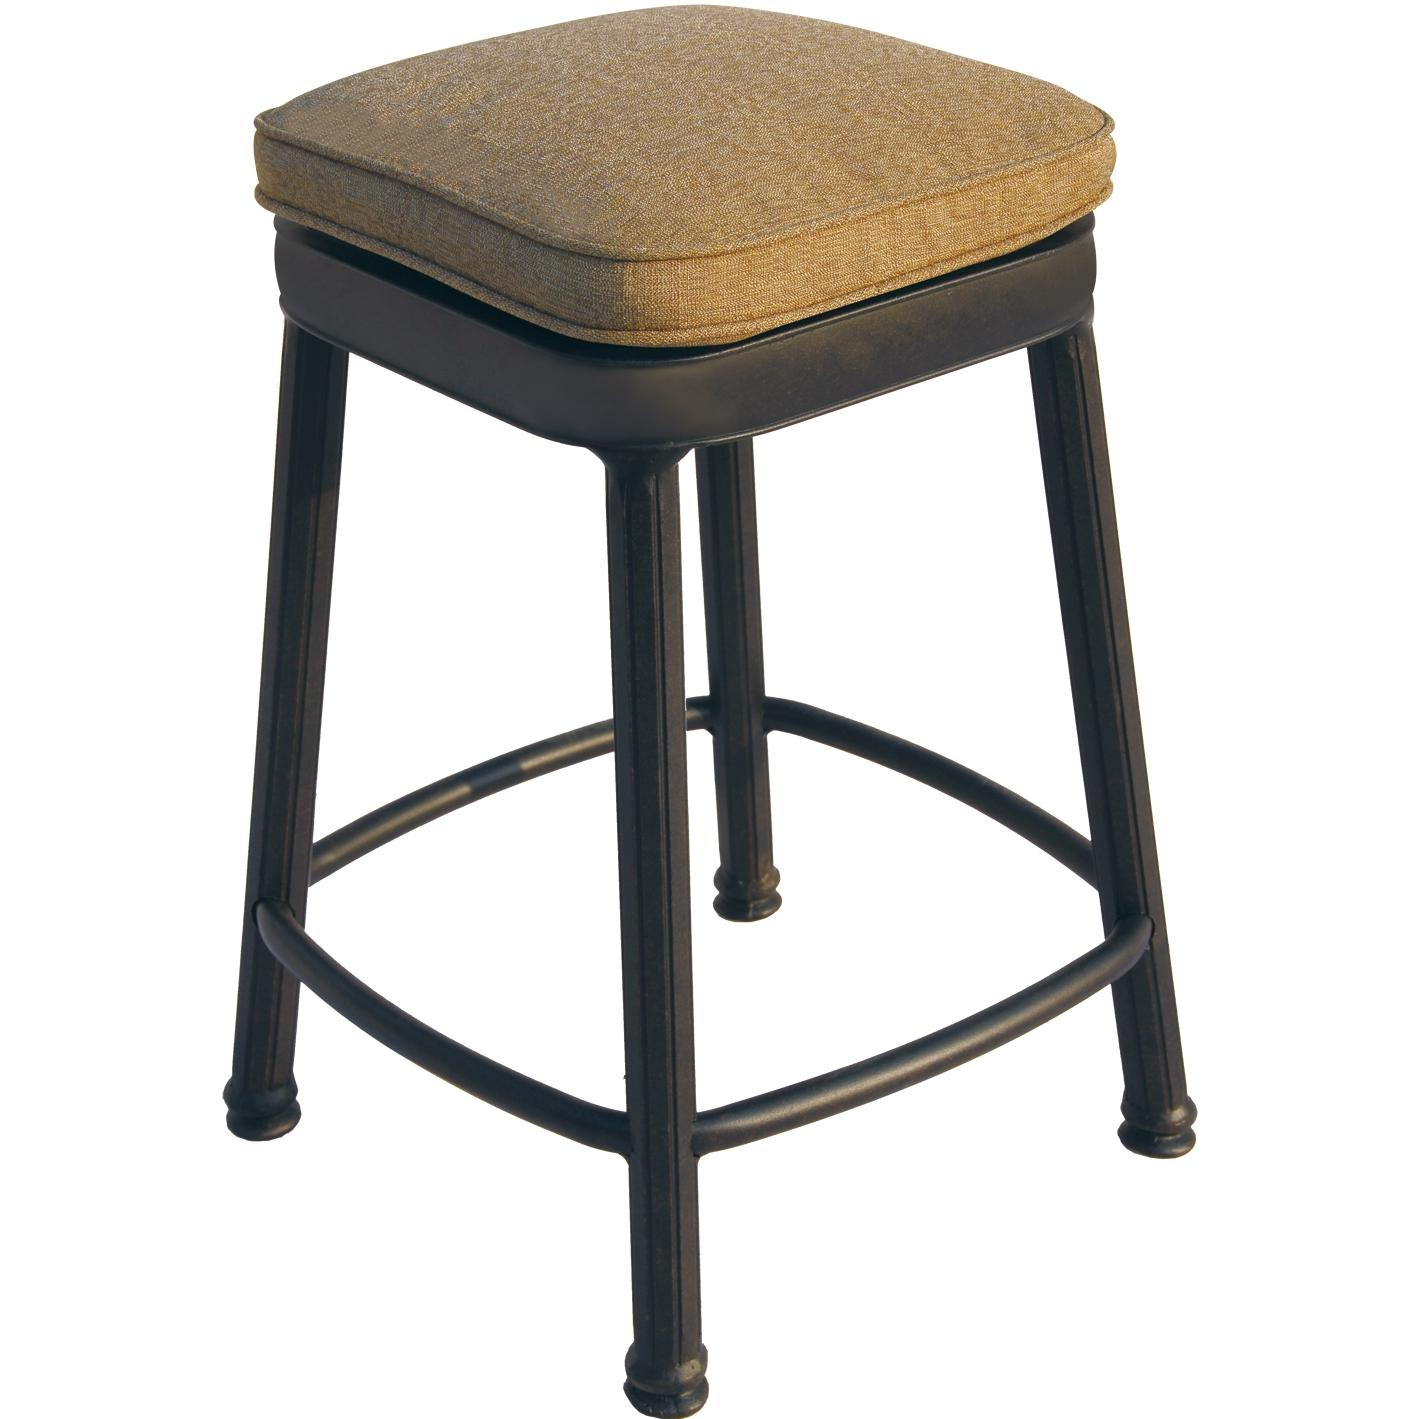 Darlee Cast Aluminum Outdoor Patio Backless Counter Height Square Bar Stool With Cushion - Antique Bronze